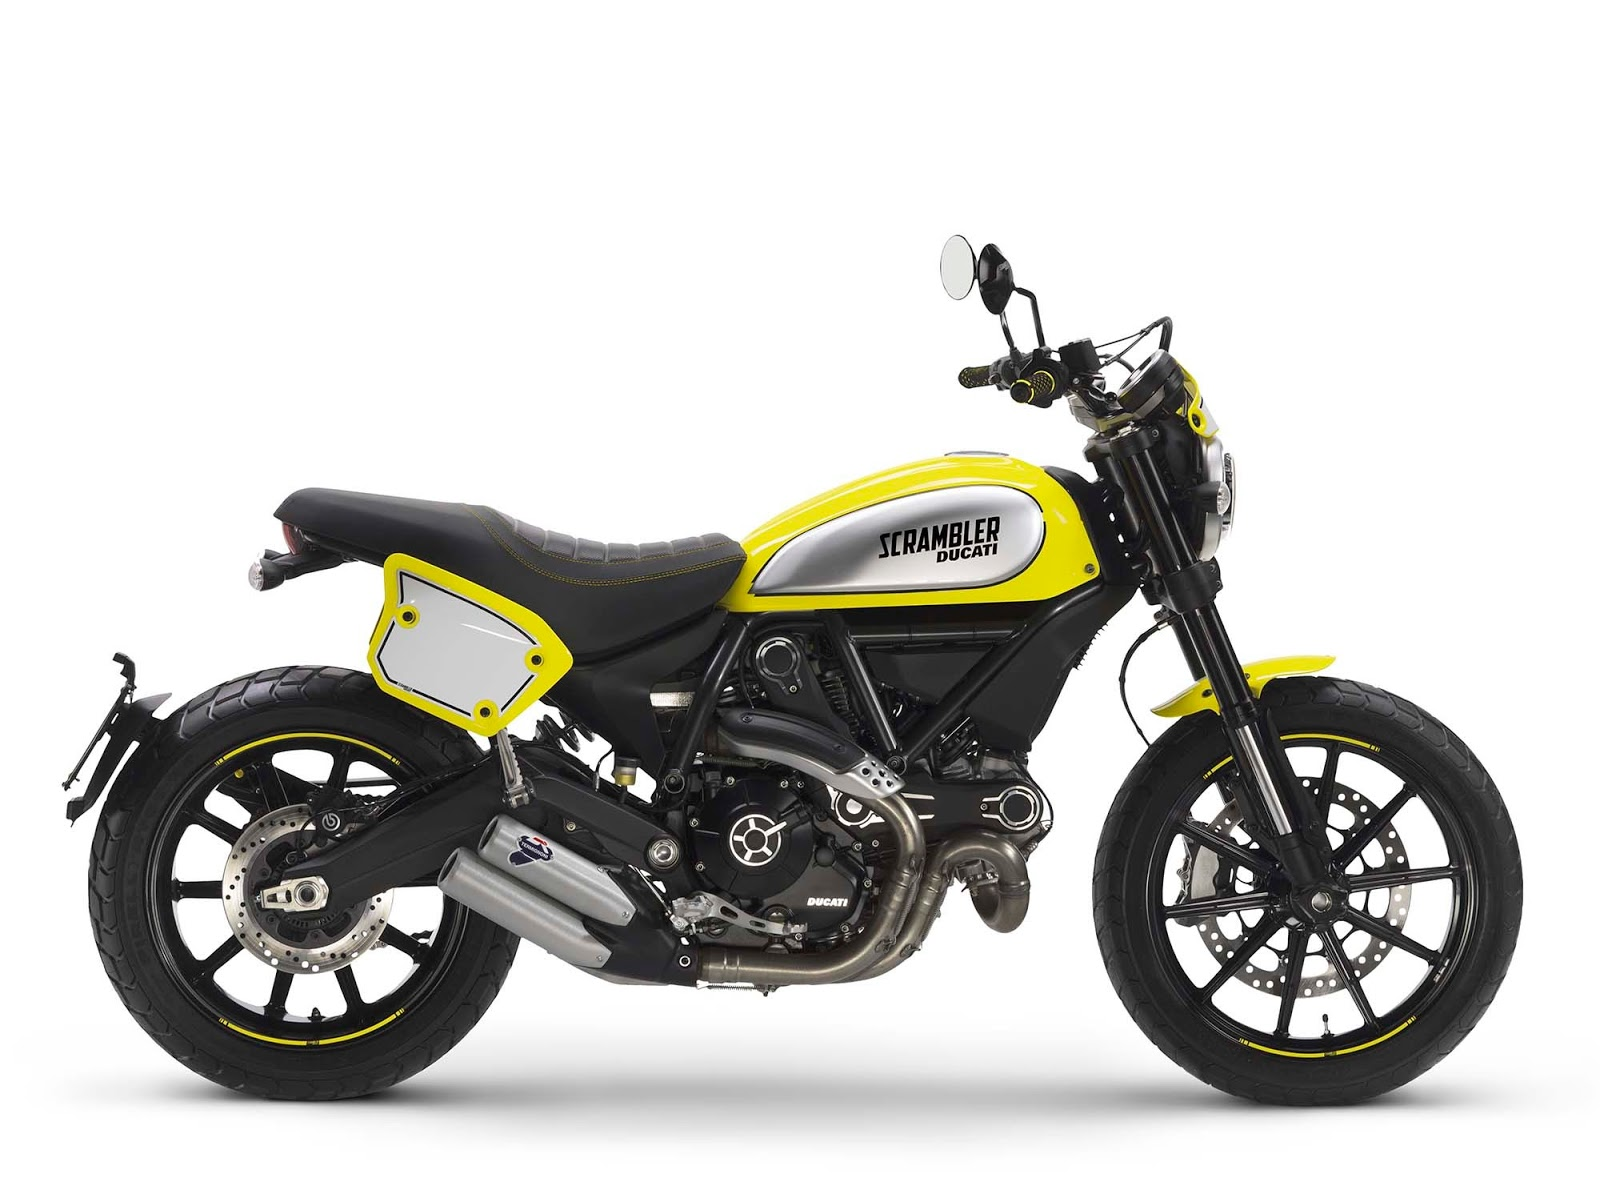 2016 ducati scrambler sixty2 hd wallpaper - types cars